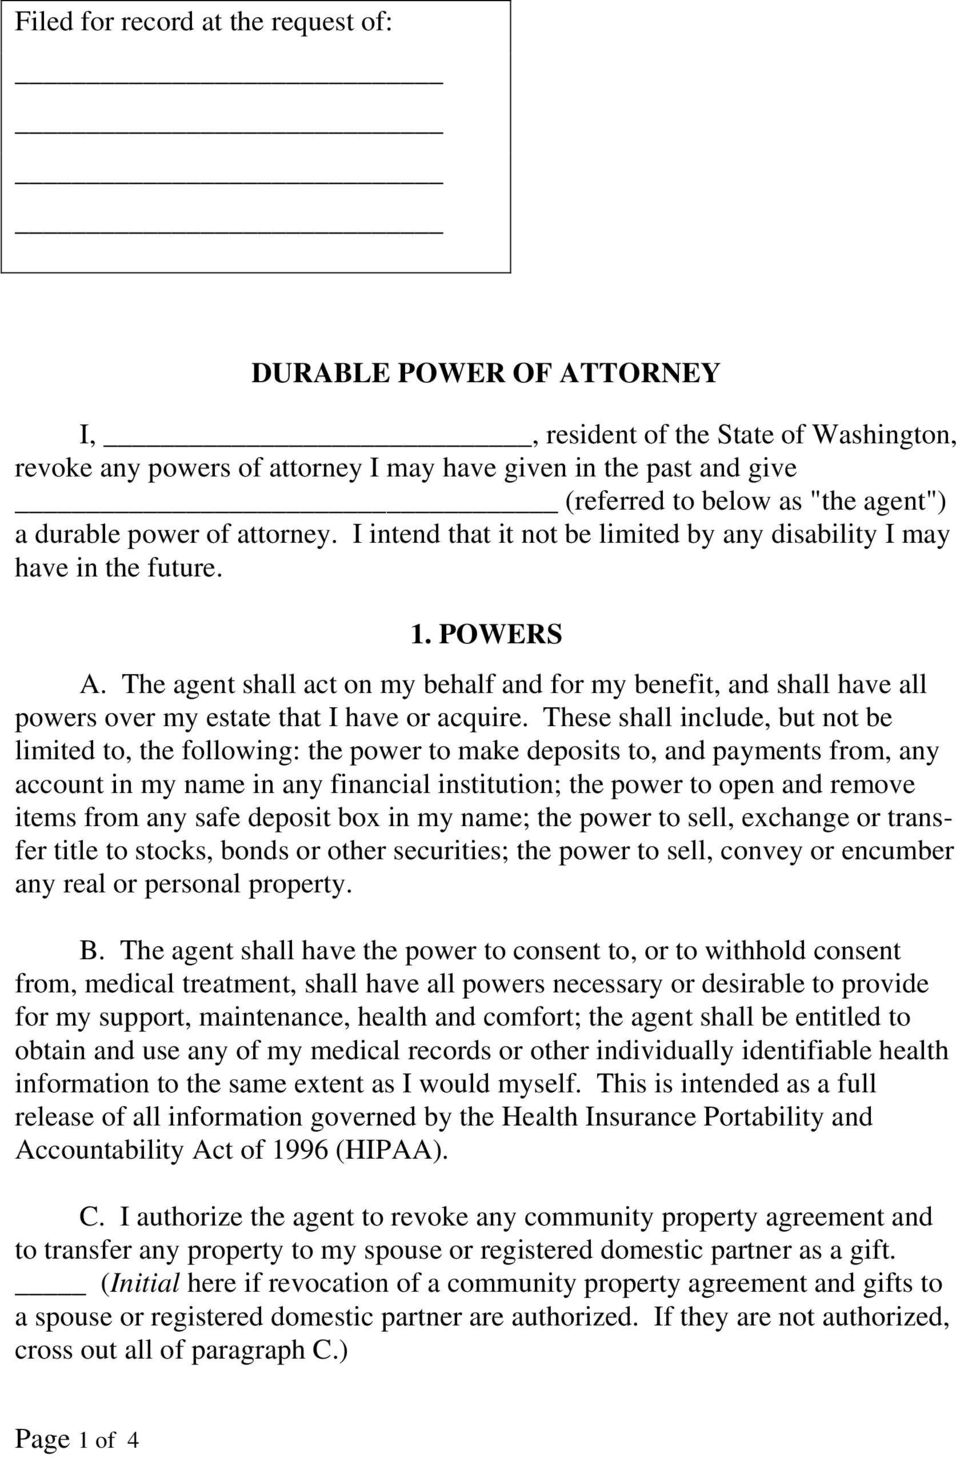 The agent shall act on my behalf and for my benefit, and shall have all powers over my estate that I have or acquire.